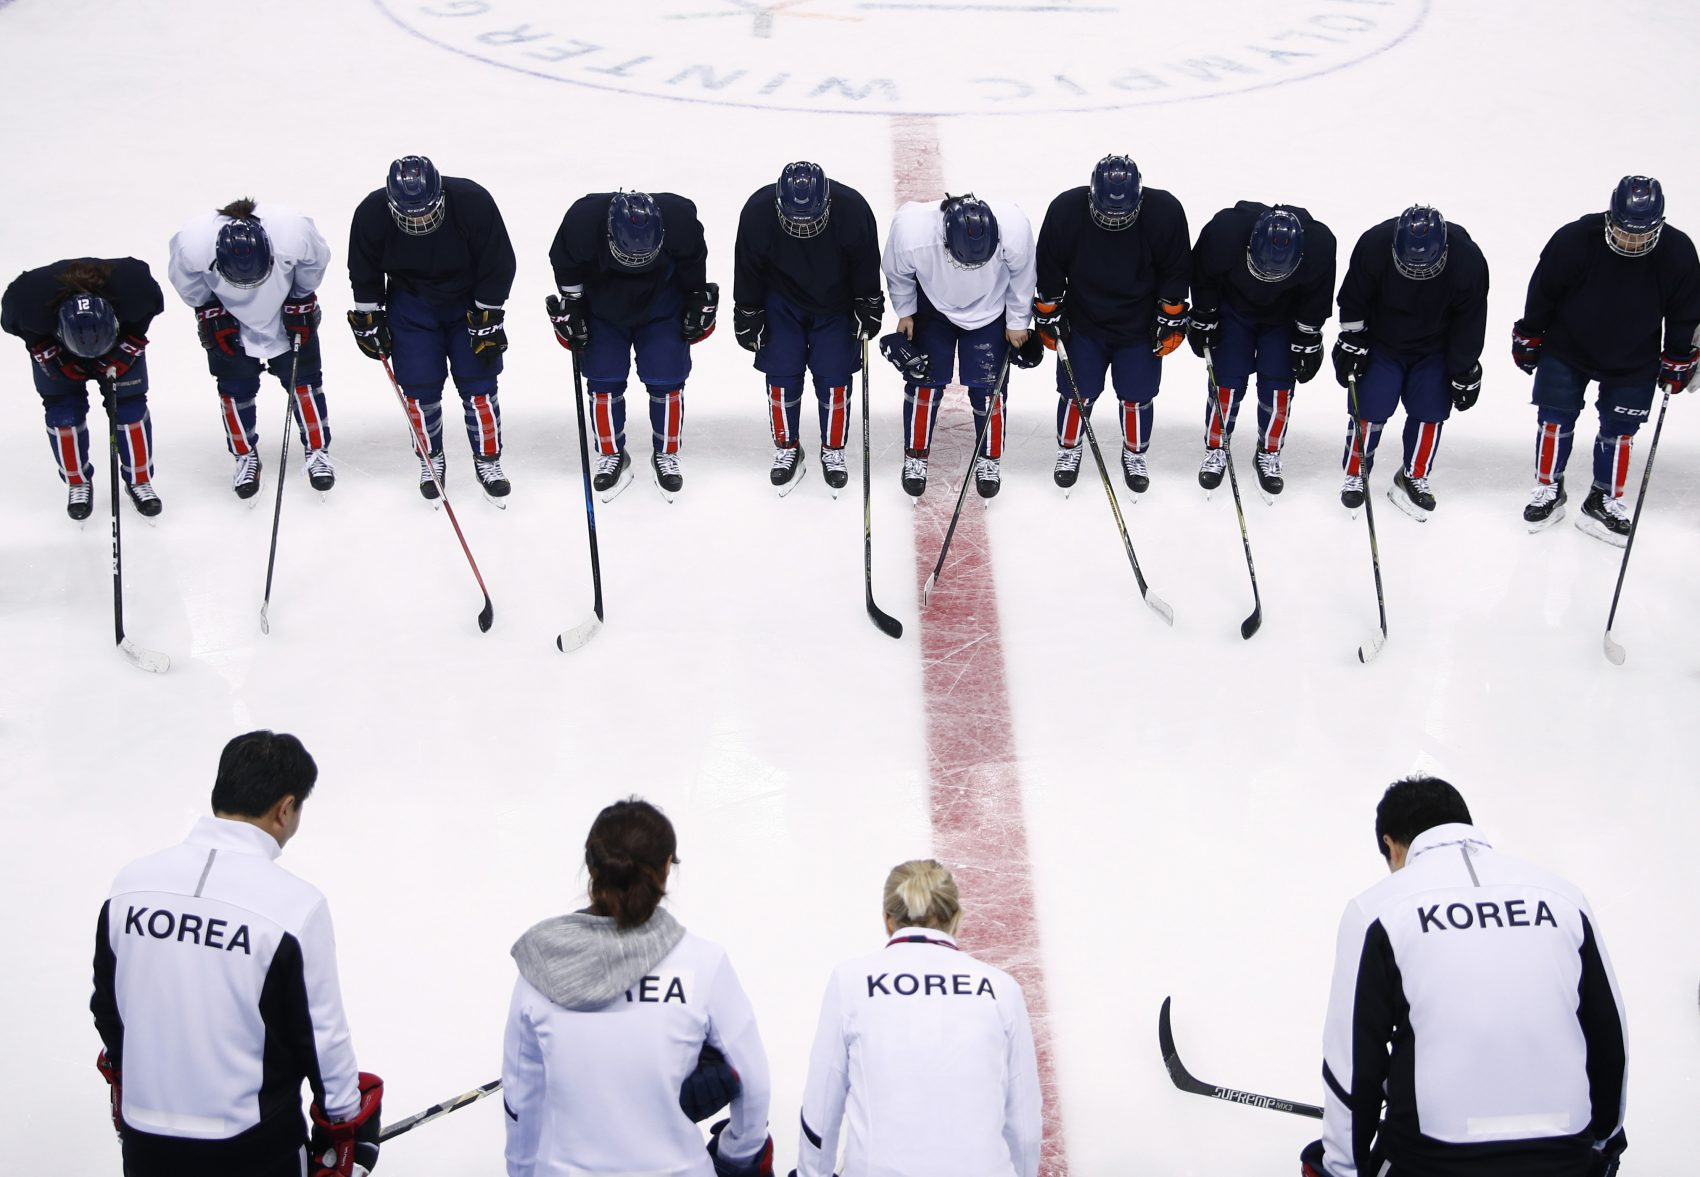 The combined Korean women's ice hockey players bow to their coaching staff after a practice session prior to the 2018 Winter Olympics in Gangneung, South Korea, Monday, Feb. 5, 2018. (Jae C. Hong/AP)